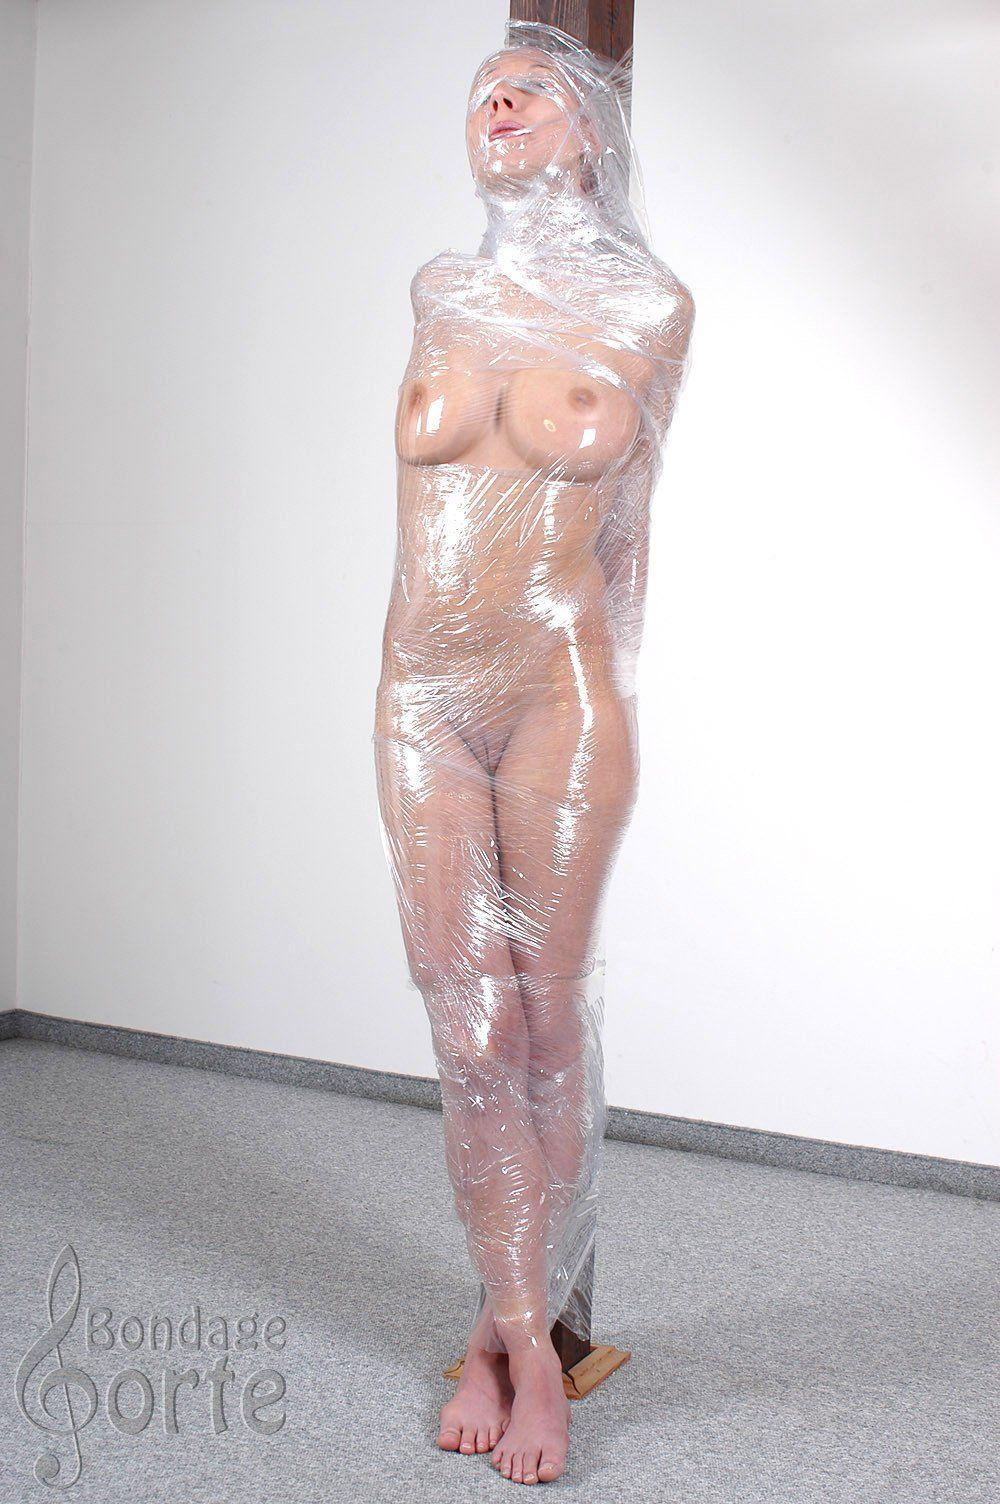 Pics wrapped in plastic wrap sex